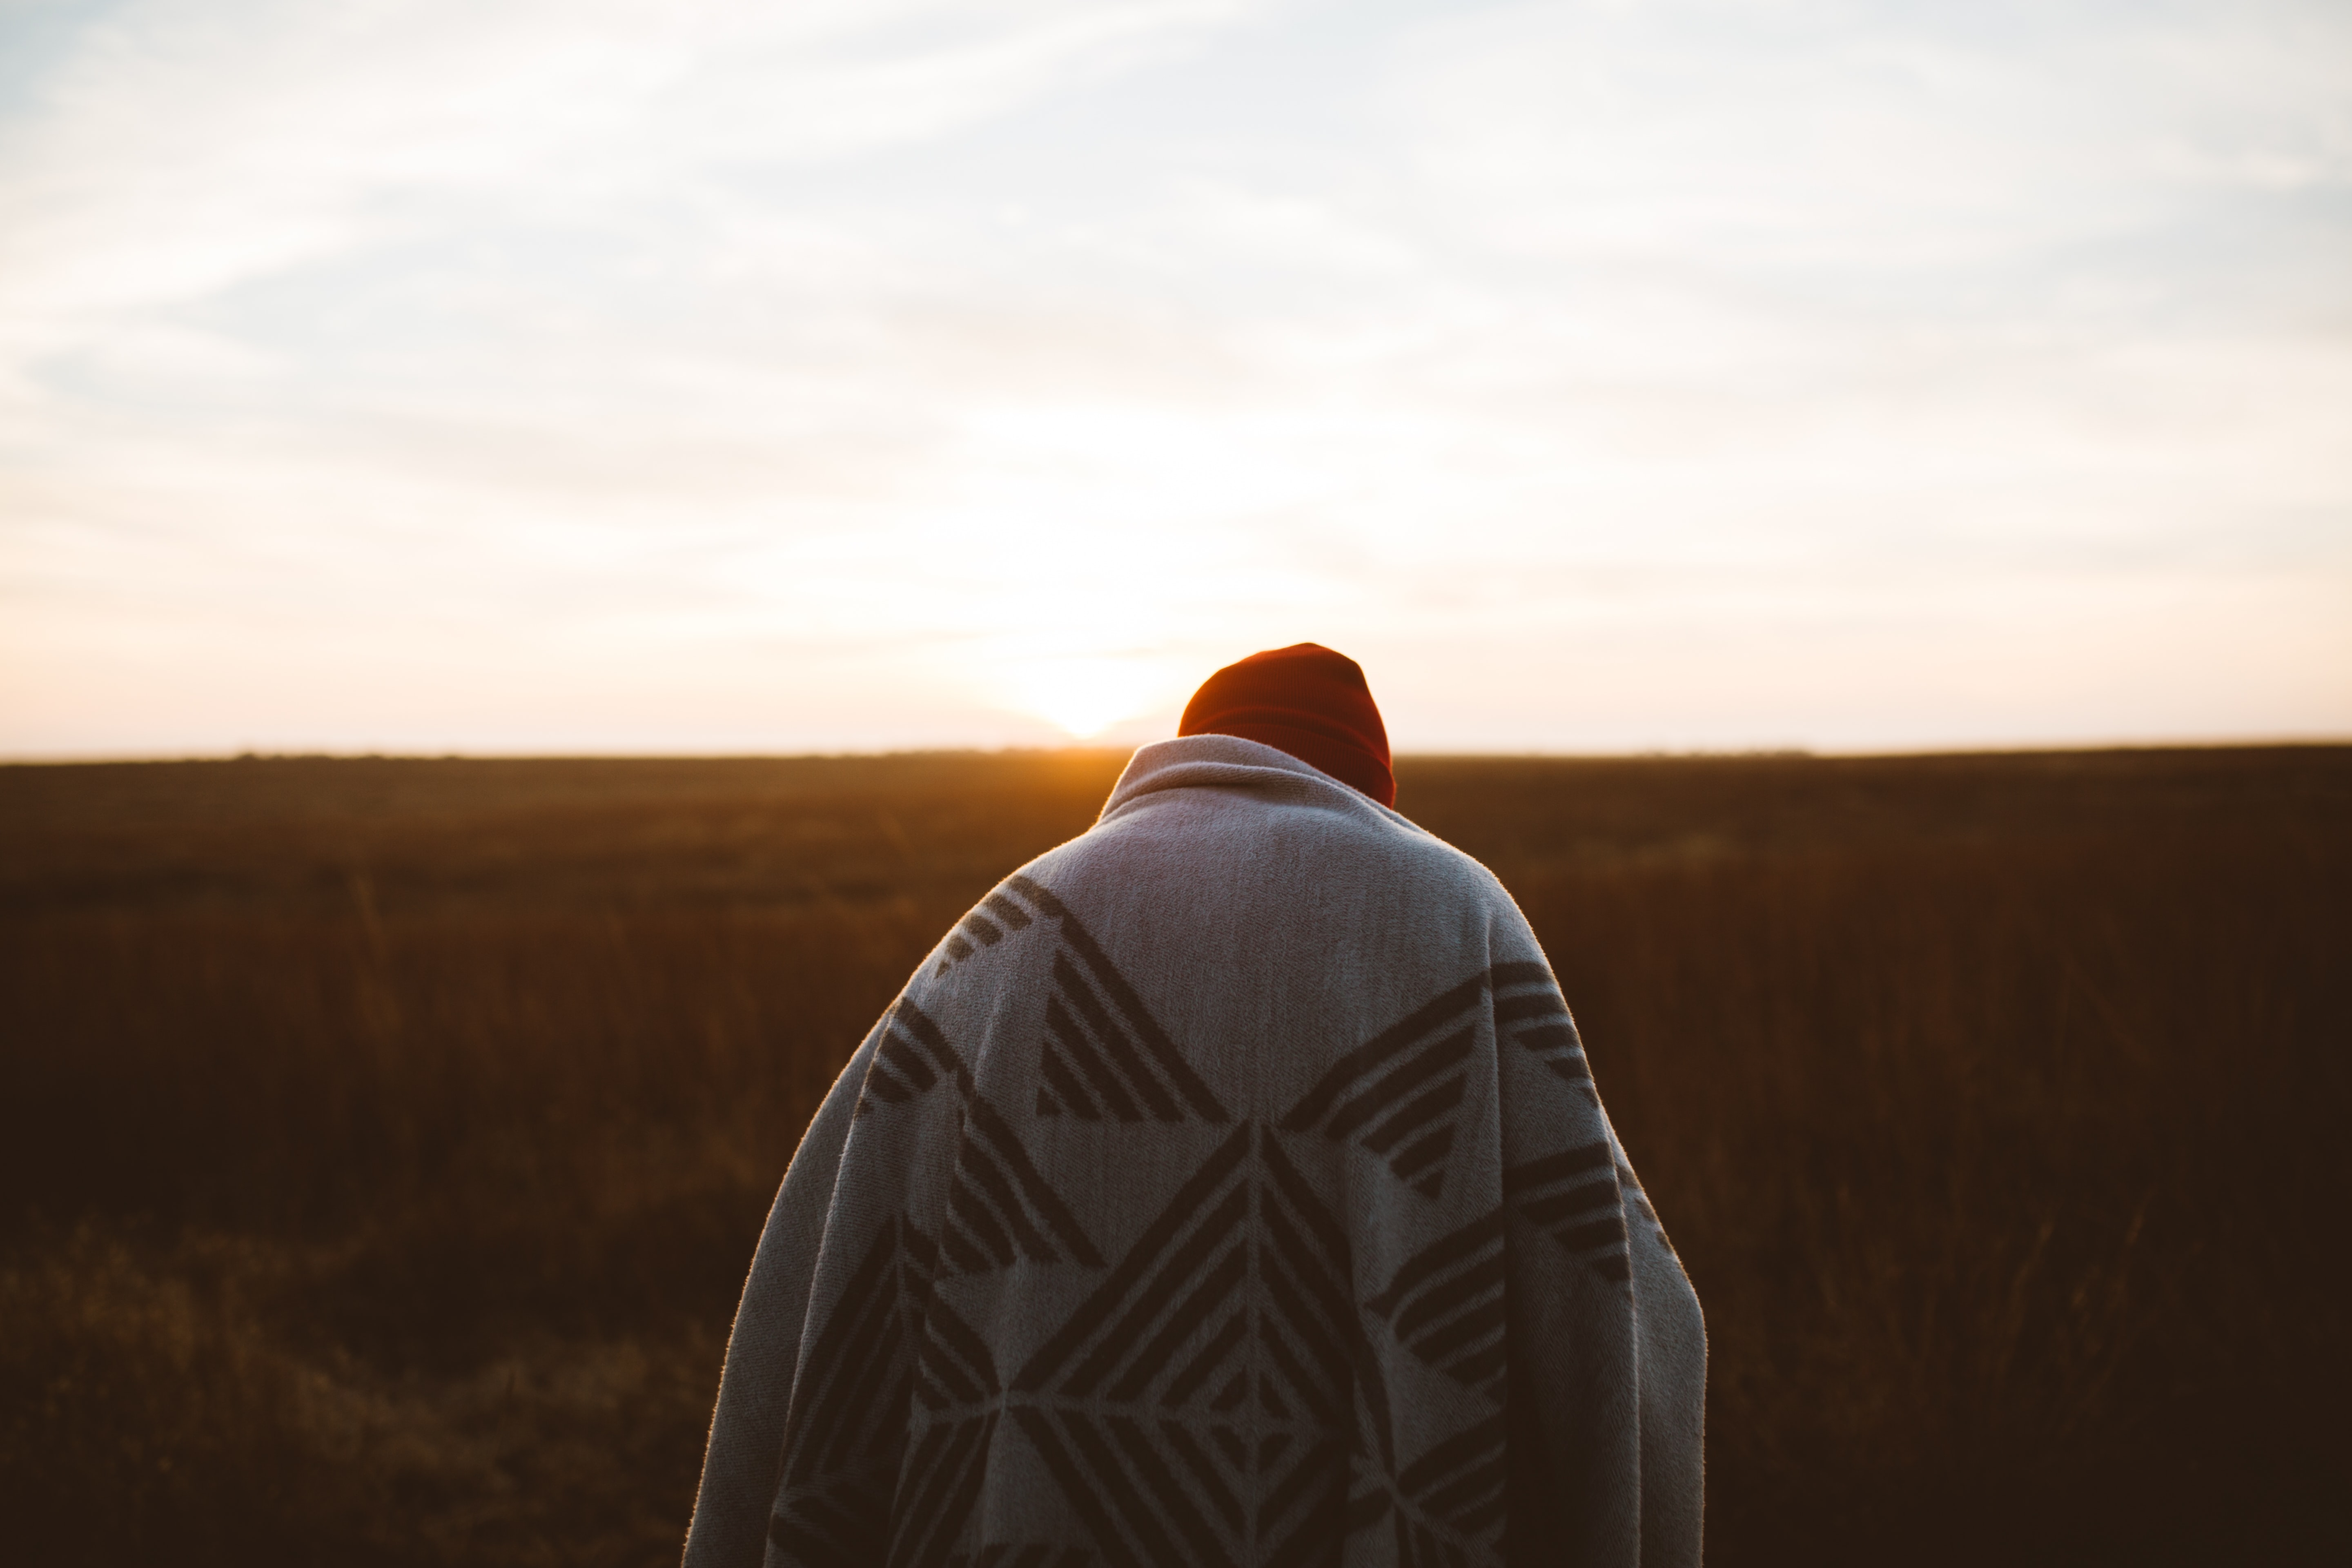 A person standing in a field at sunset, wrapped in a blanket and wearing a hat at sunset